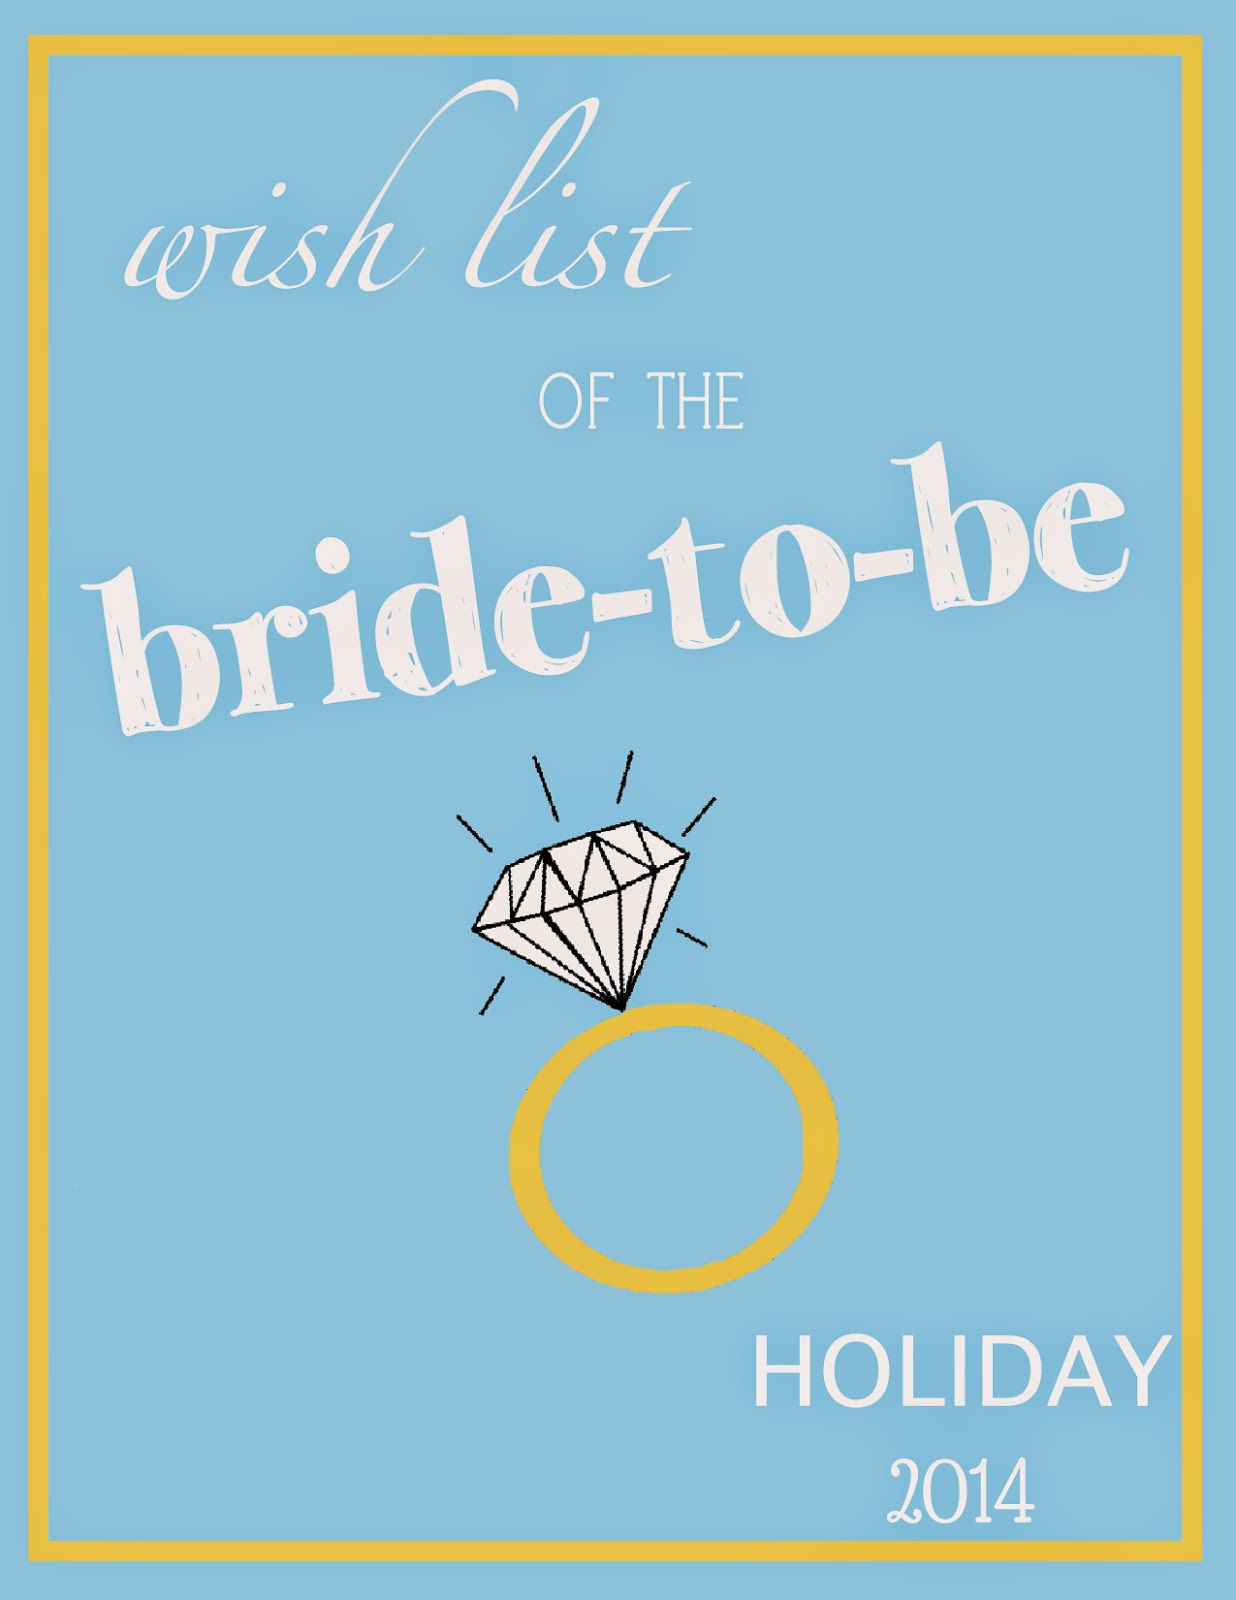 http://issuu.com/bishopboutique/docs/bride-to-be